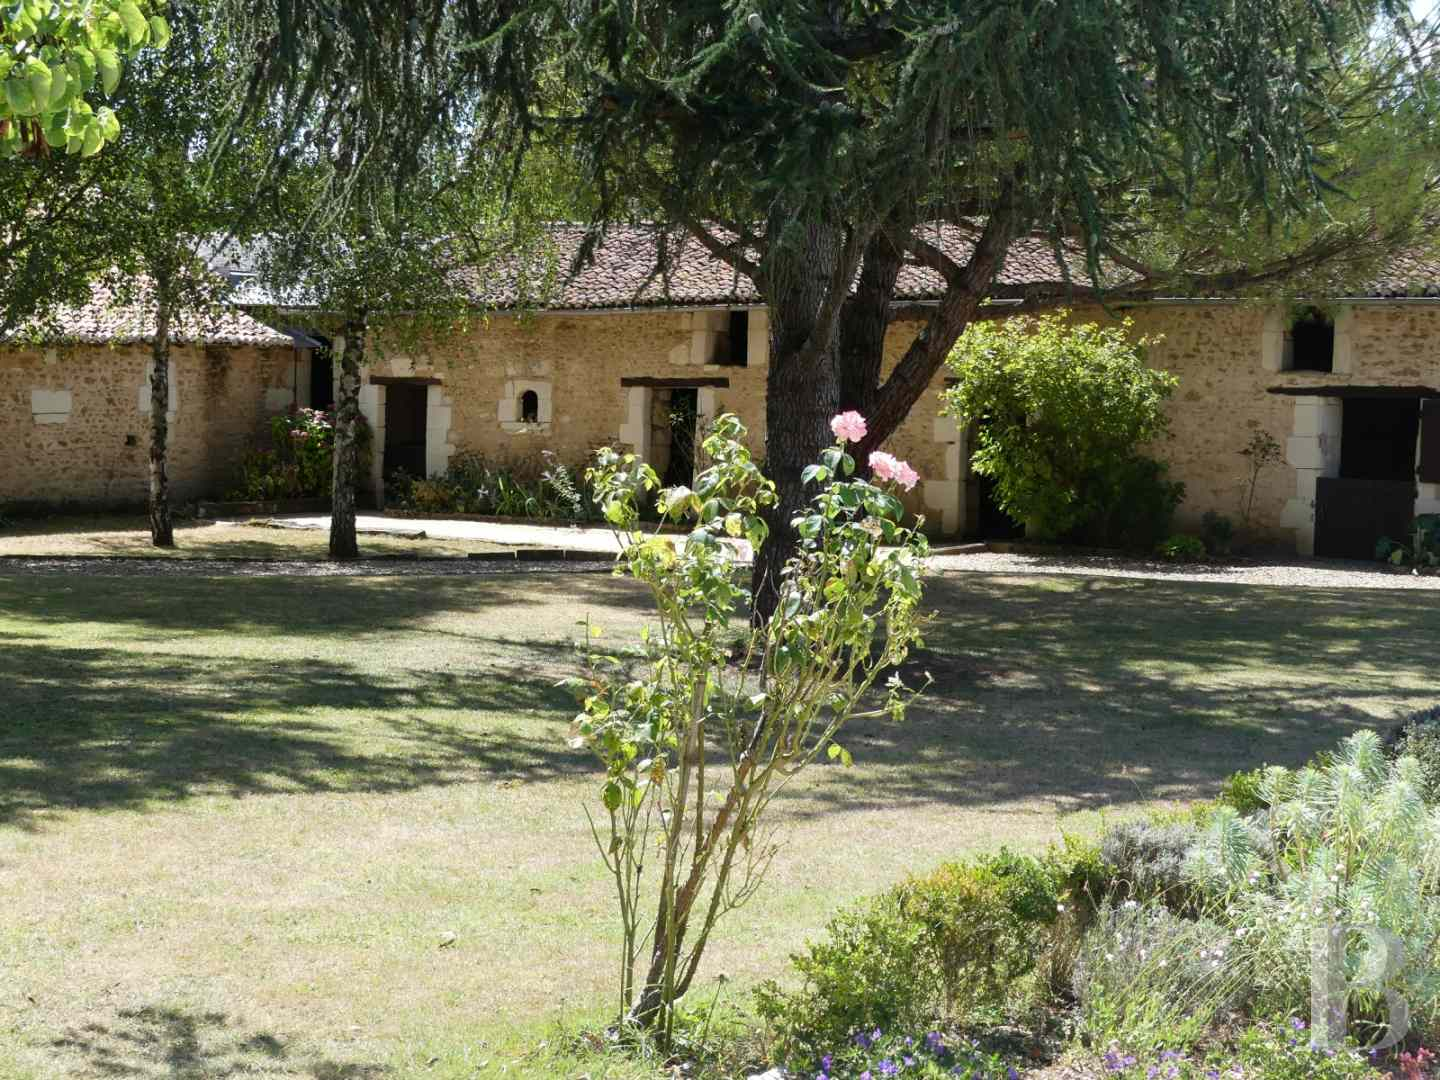 property for sale France poitou charentes residences farms - 8 zoom